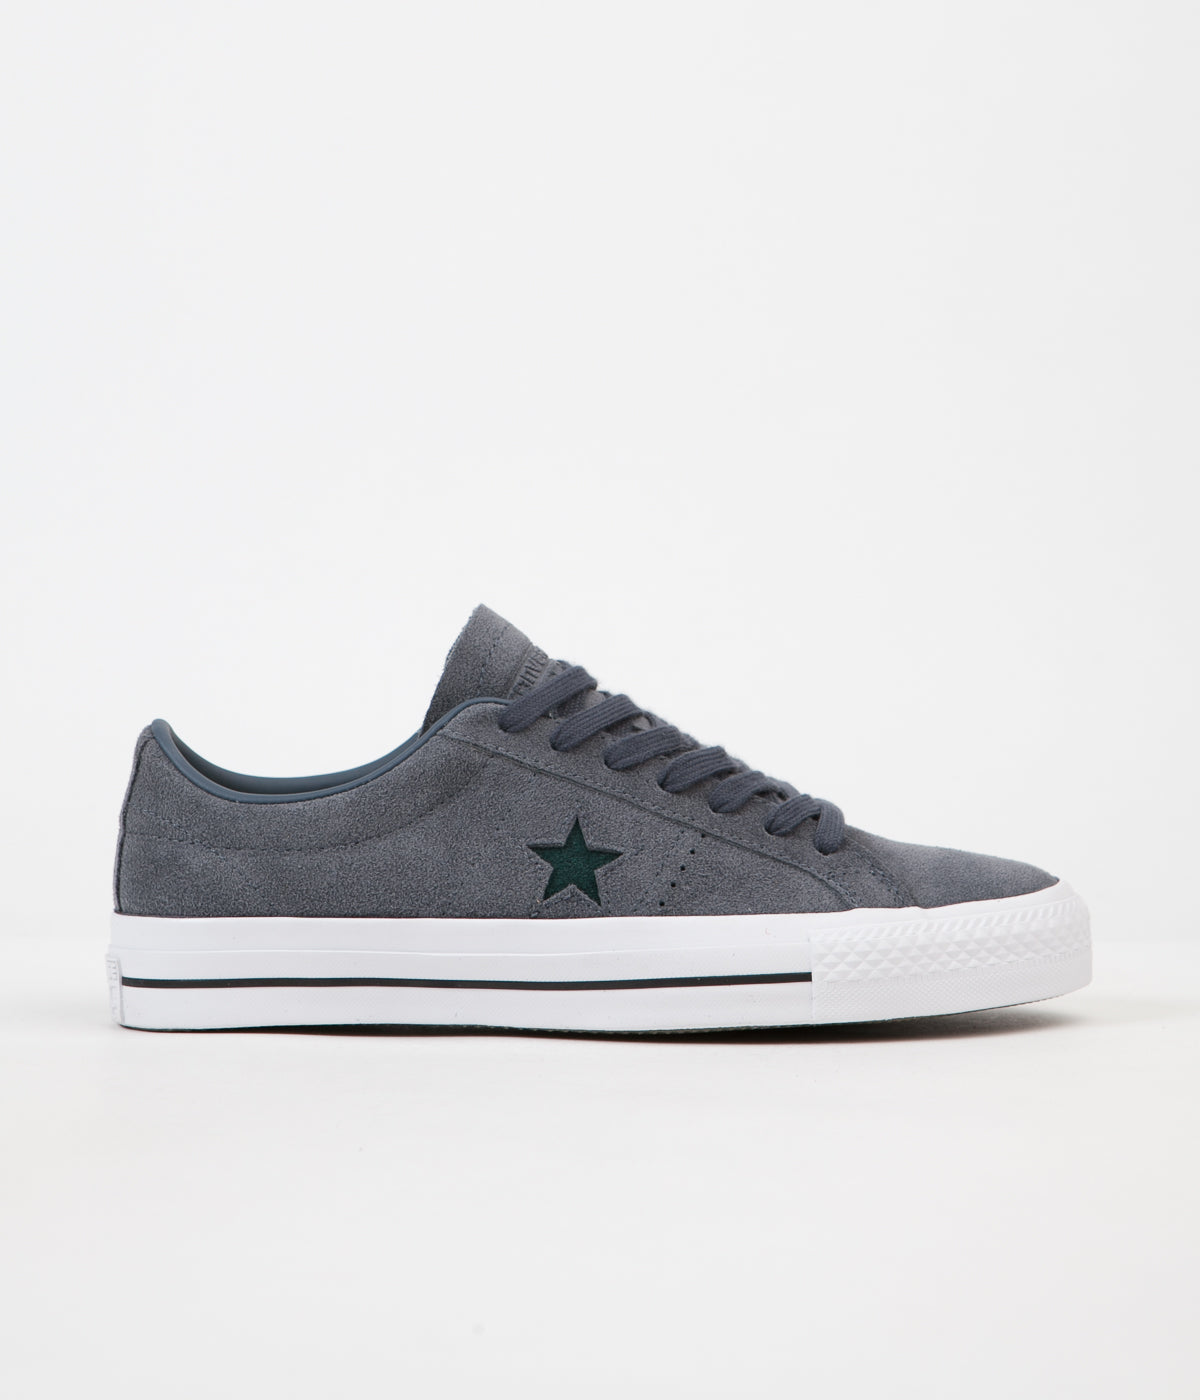 Converse One Star Pro Ox Shoes - Sharkskin / Atomic Teal